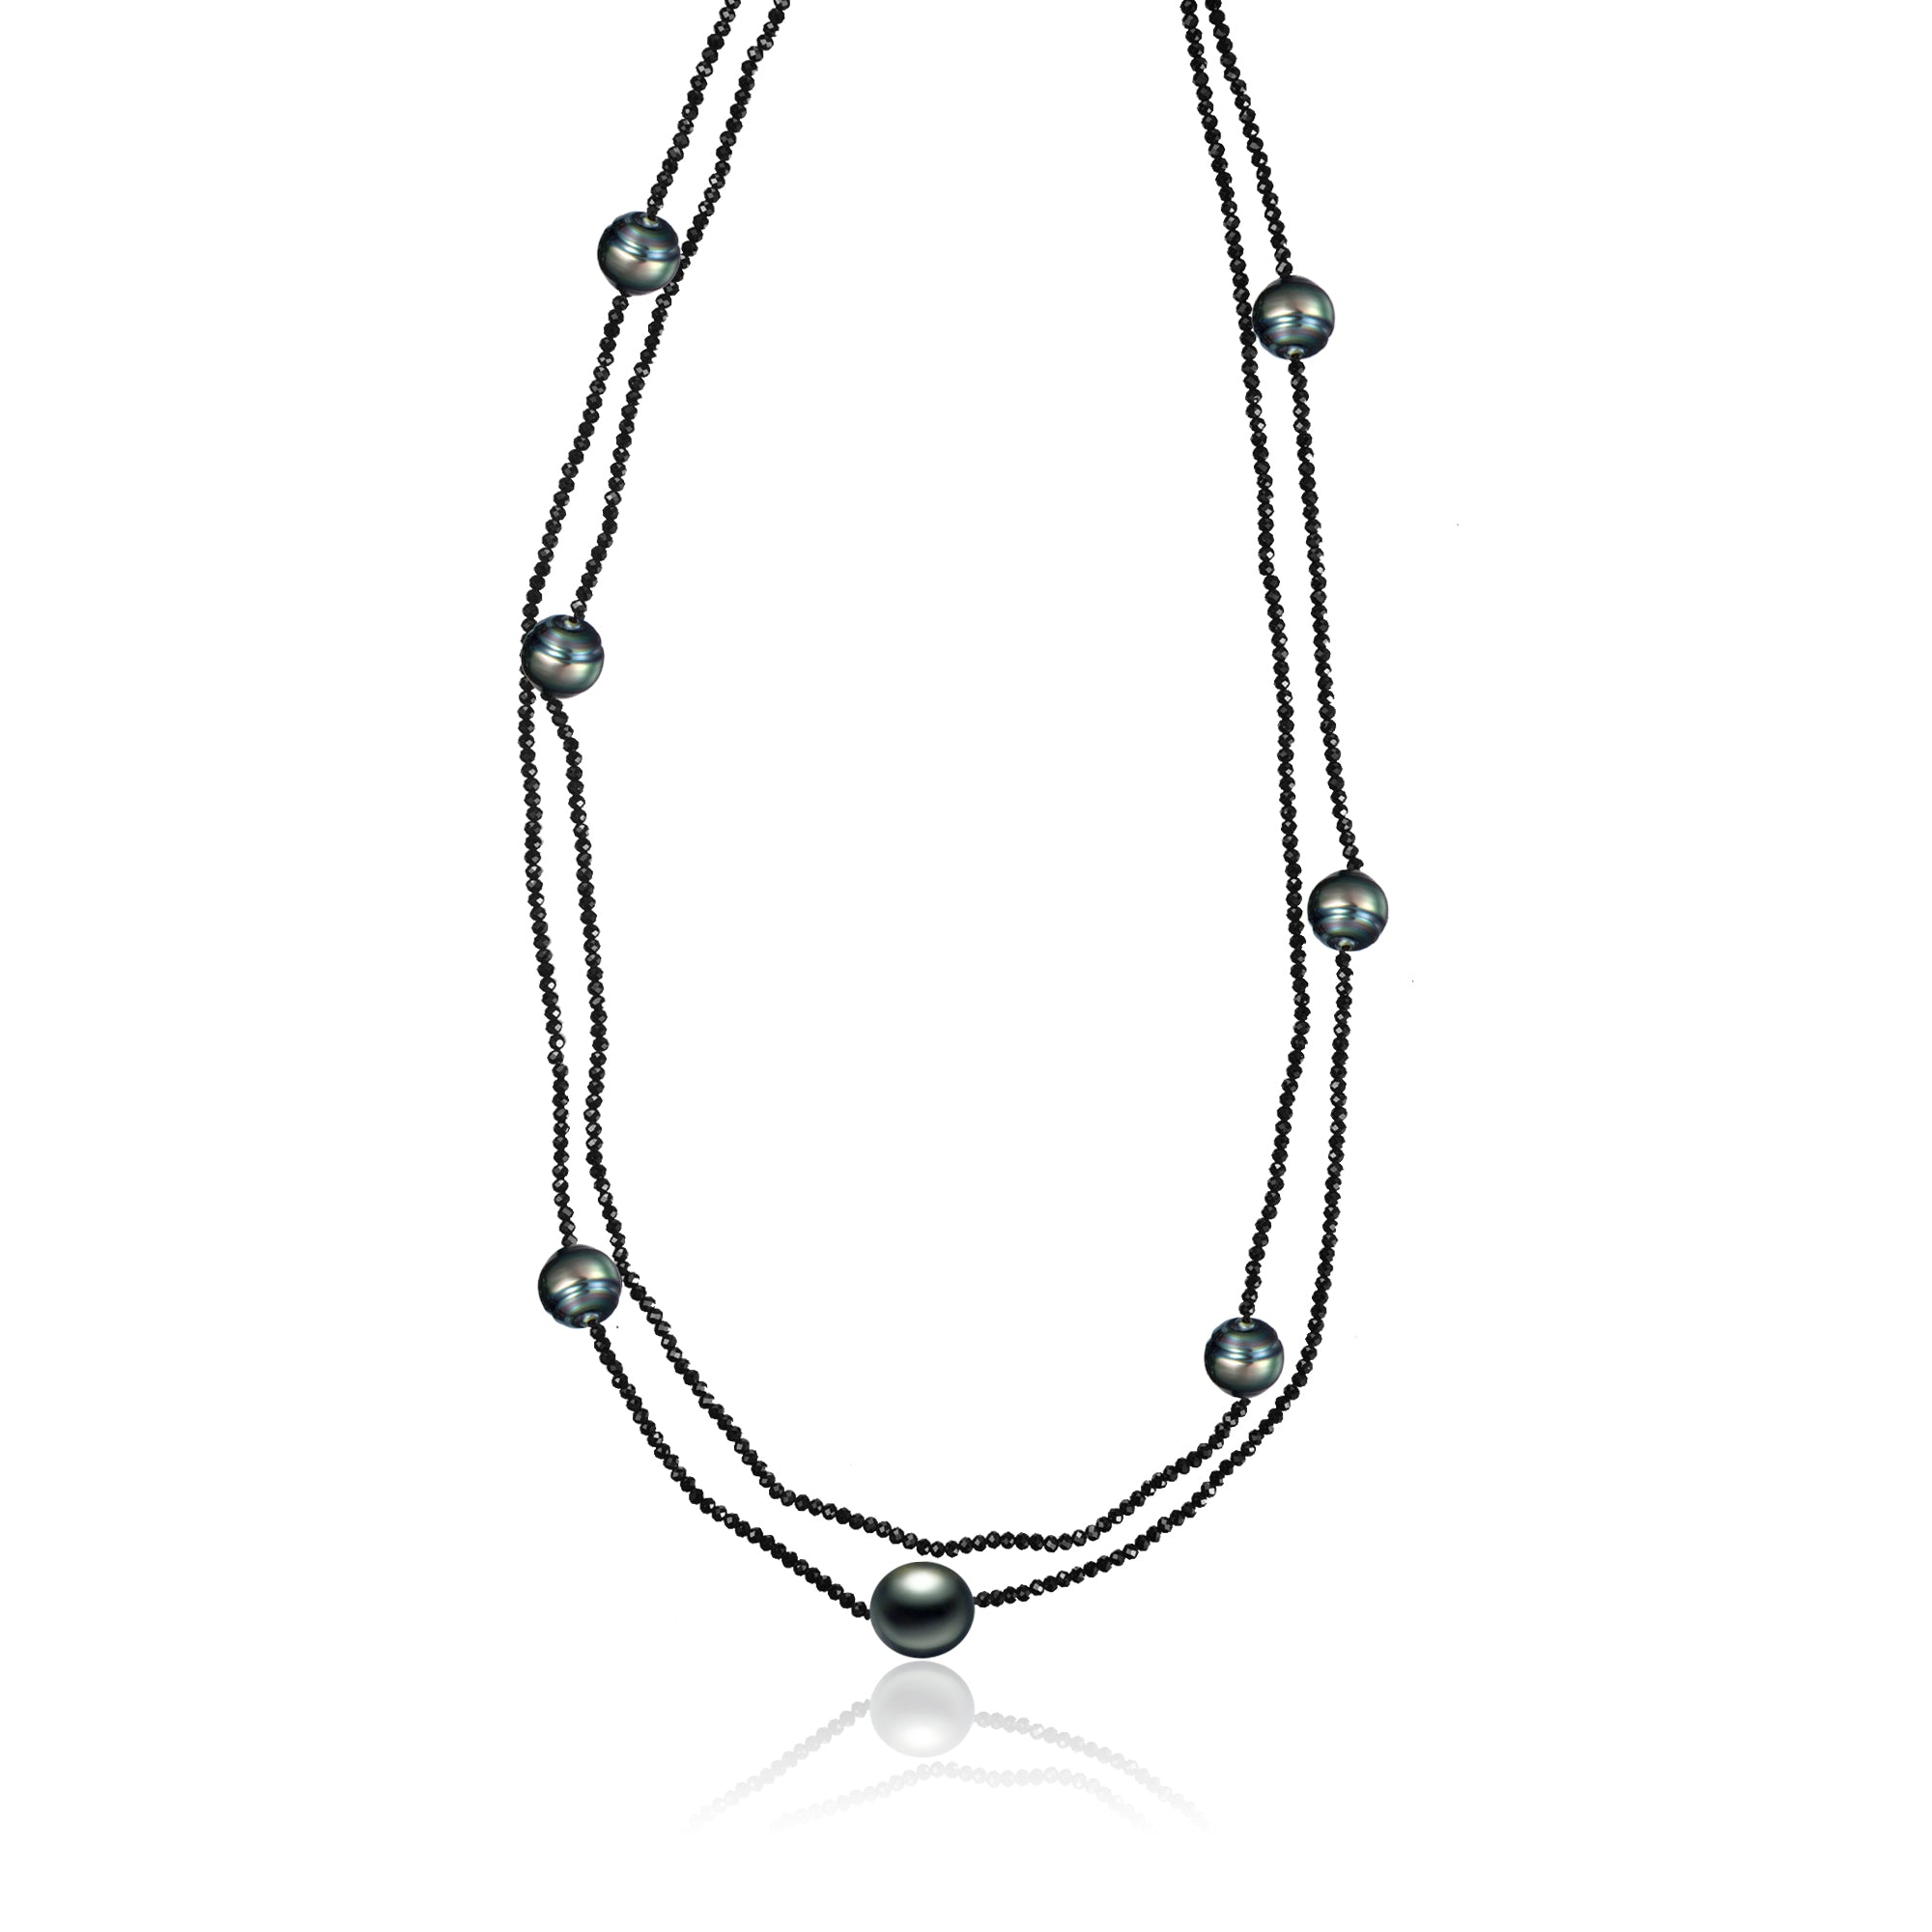 fred necklace mens men s steel and onyx image black stainless bennett